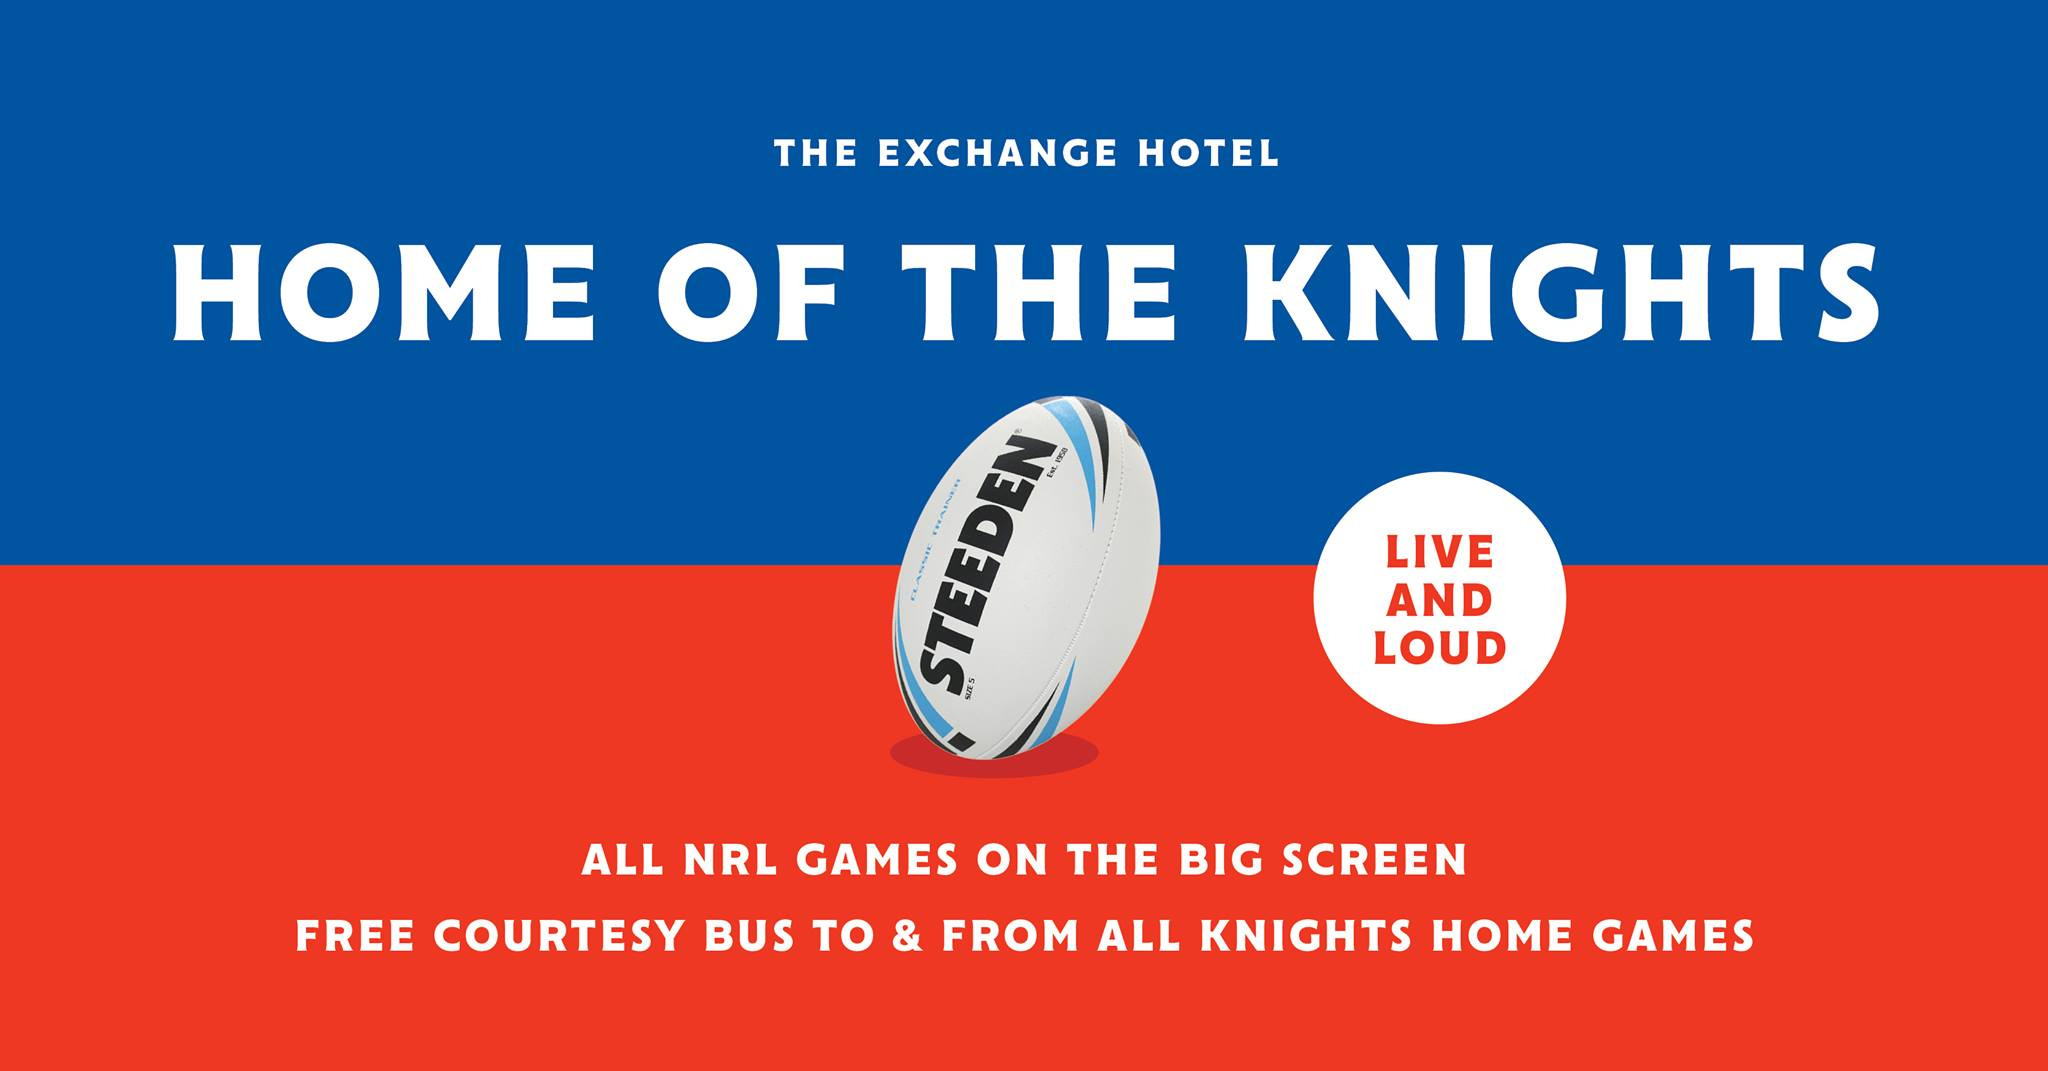 Home of the Knights – All Games Live and Loud!